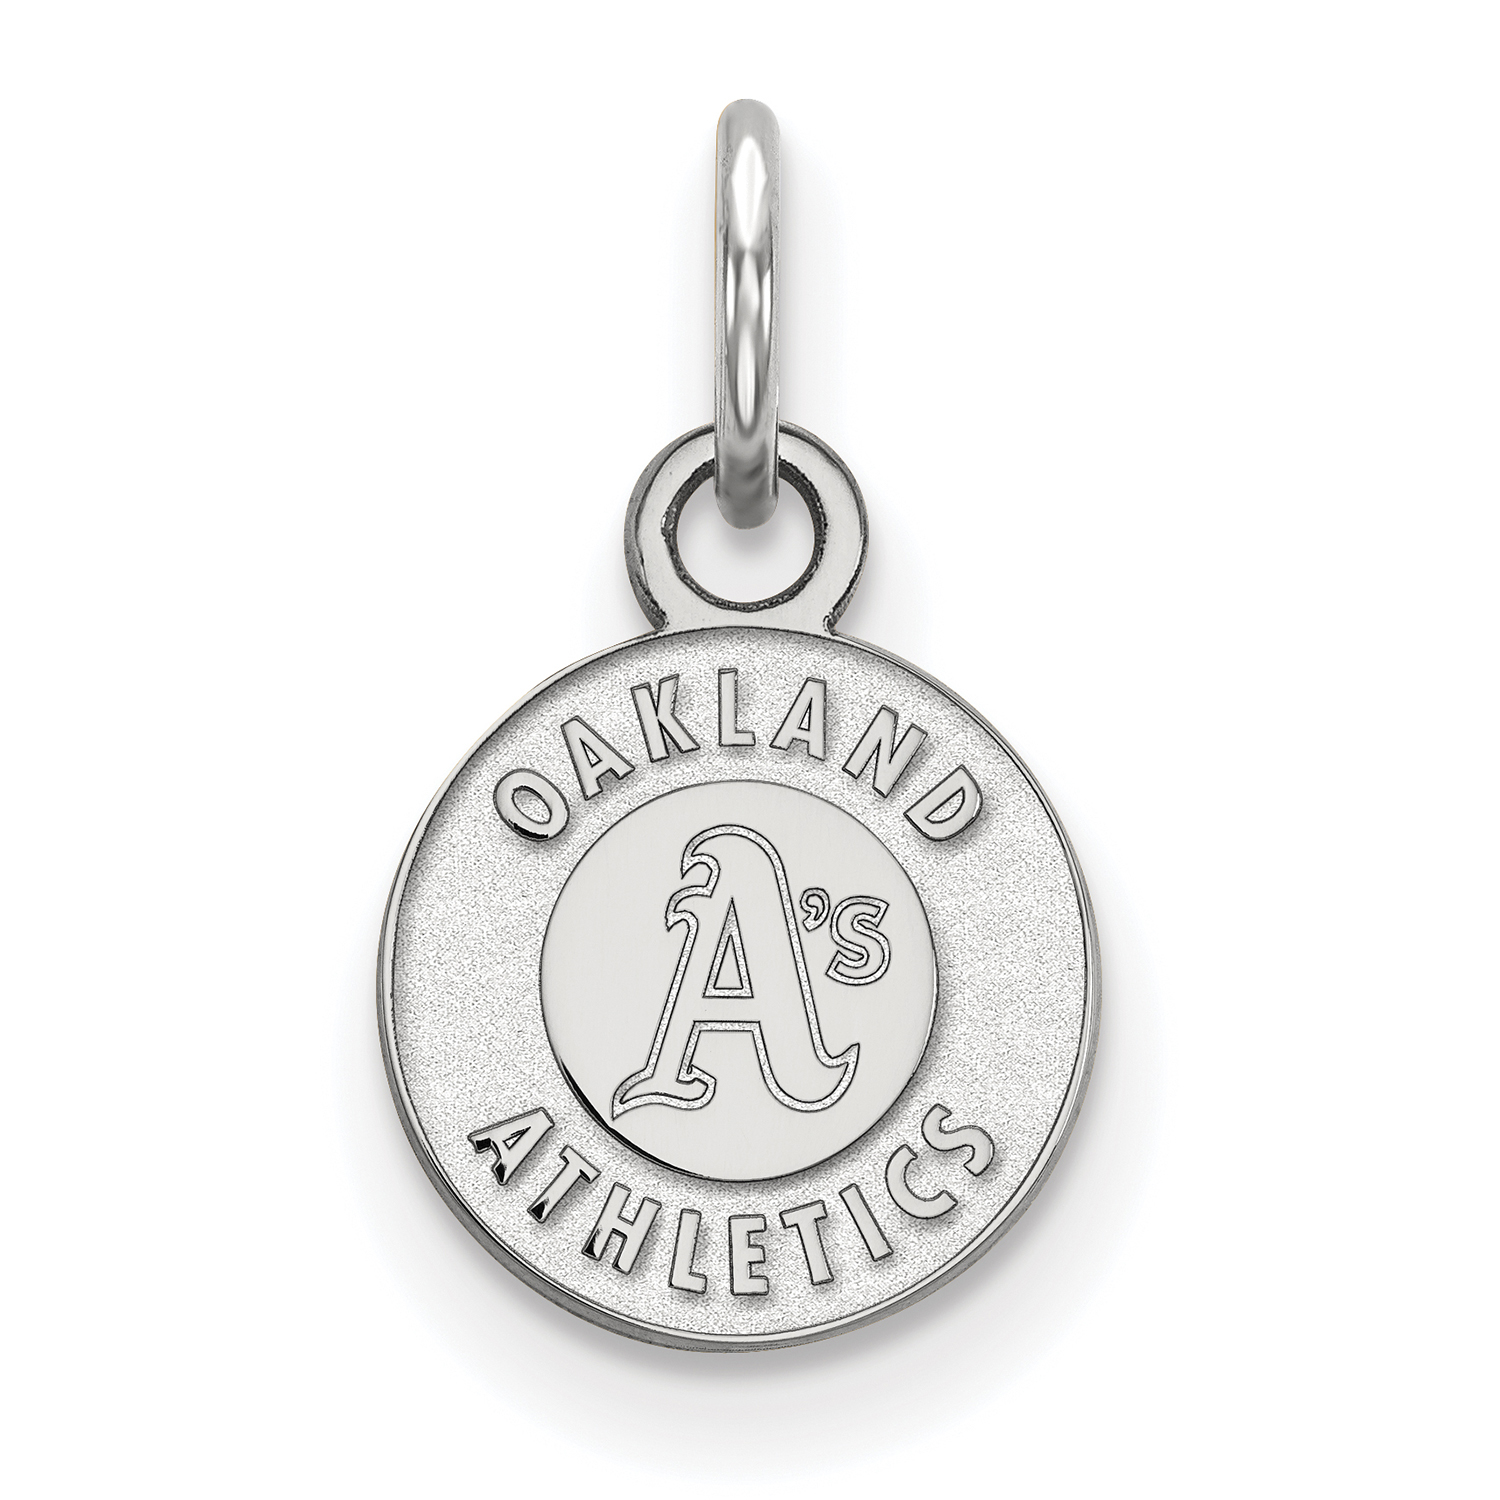 Oakland Athletics Women's Sterling Silver Extra-Small Pendant - No Size